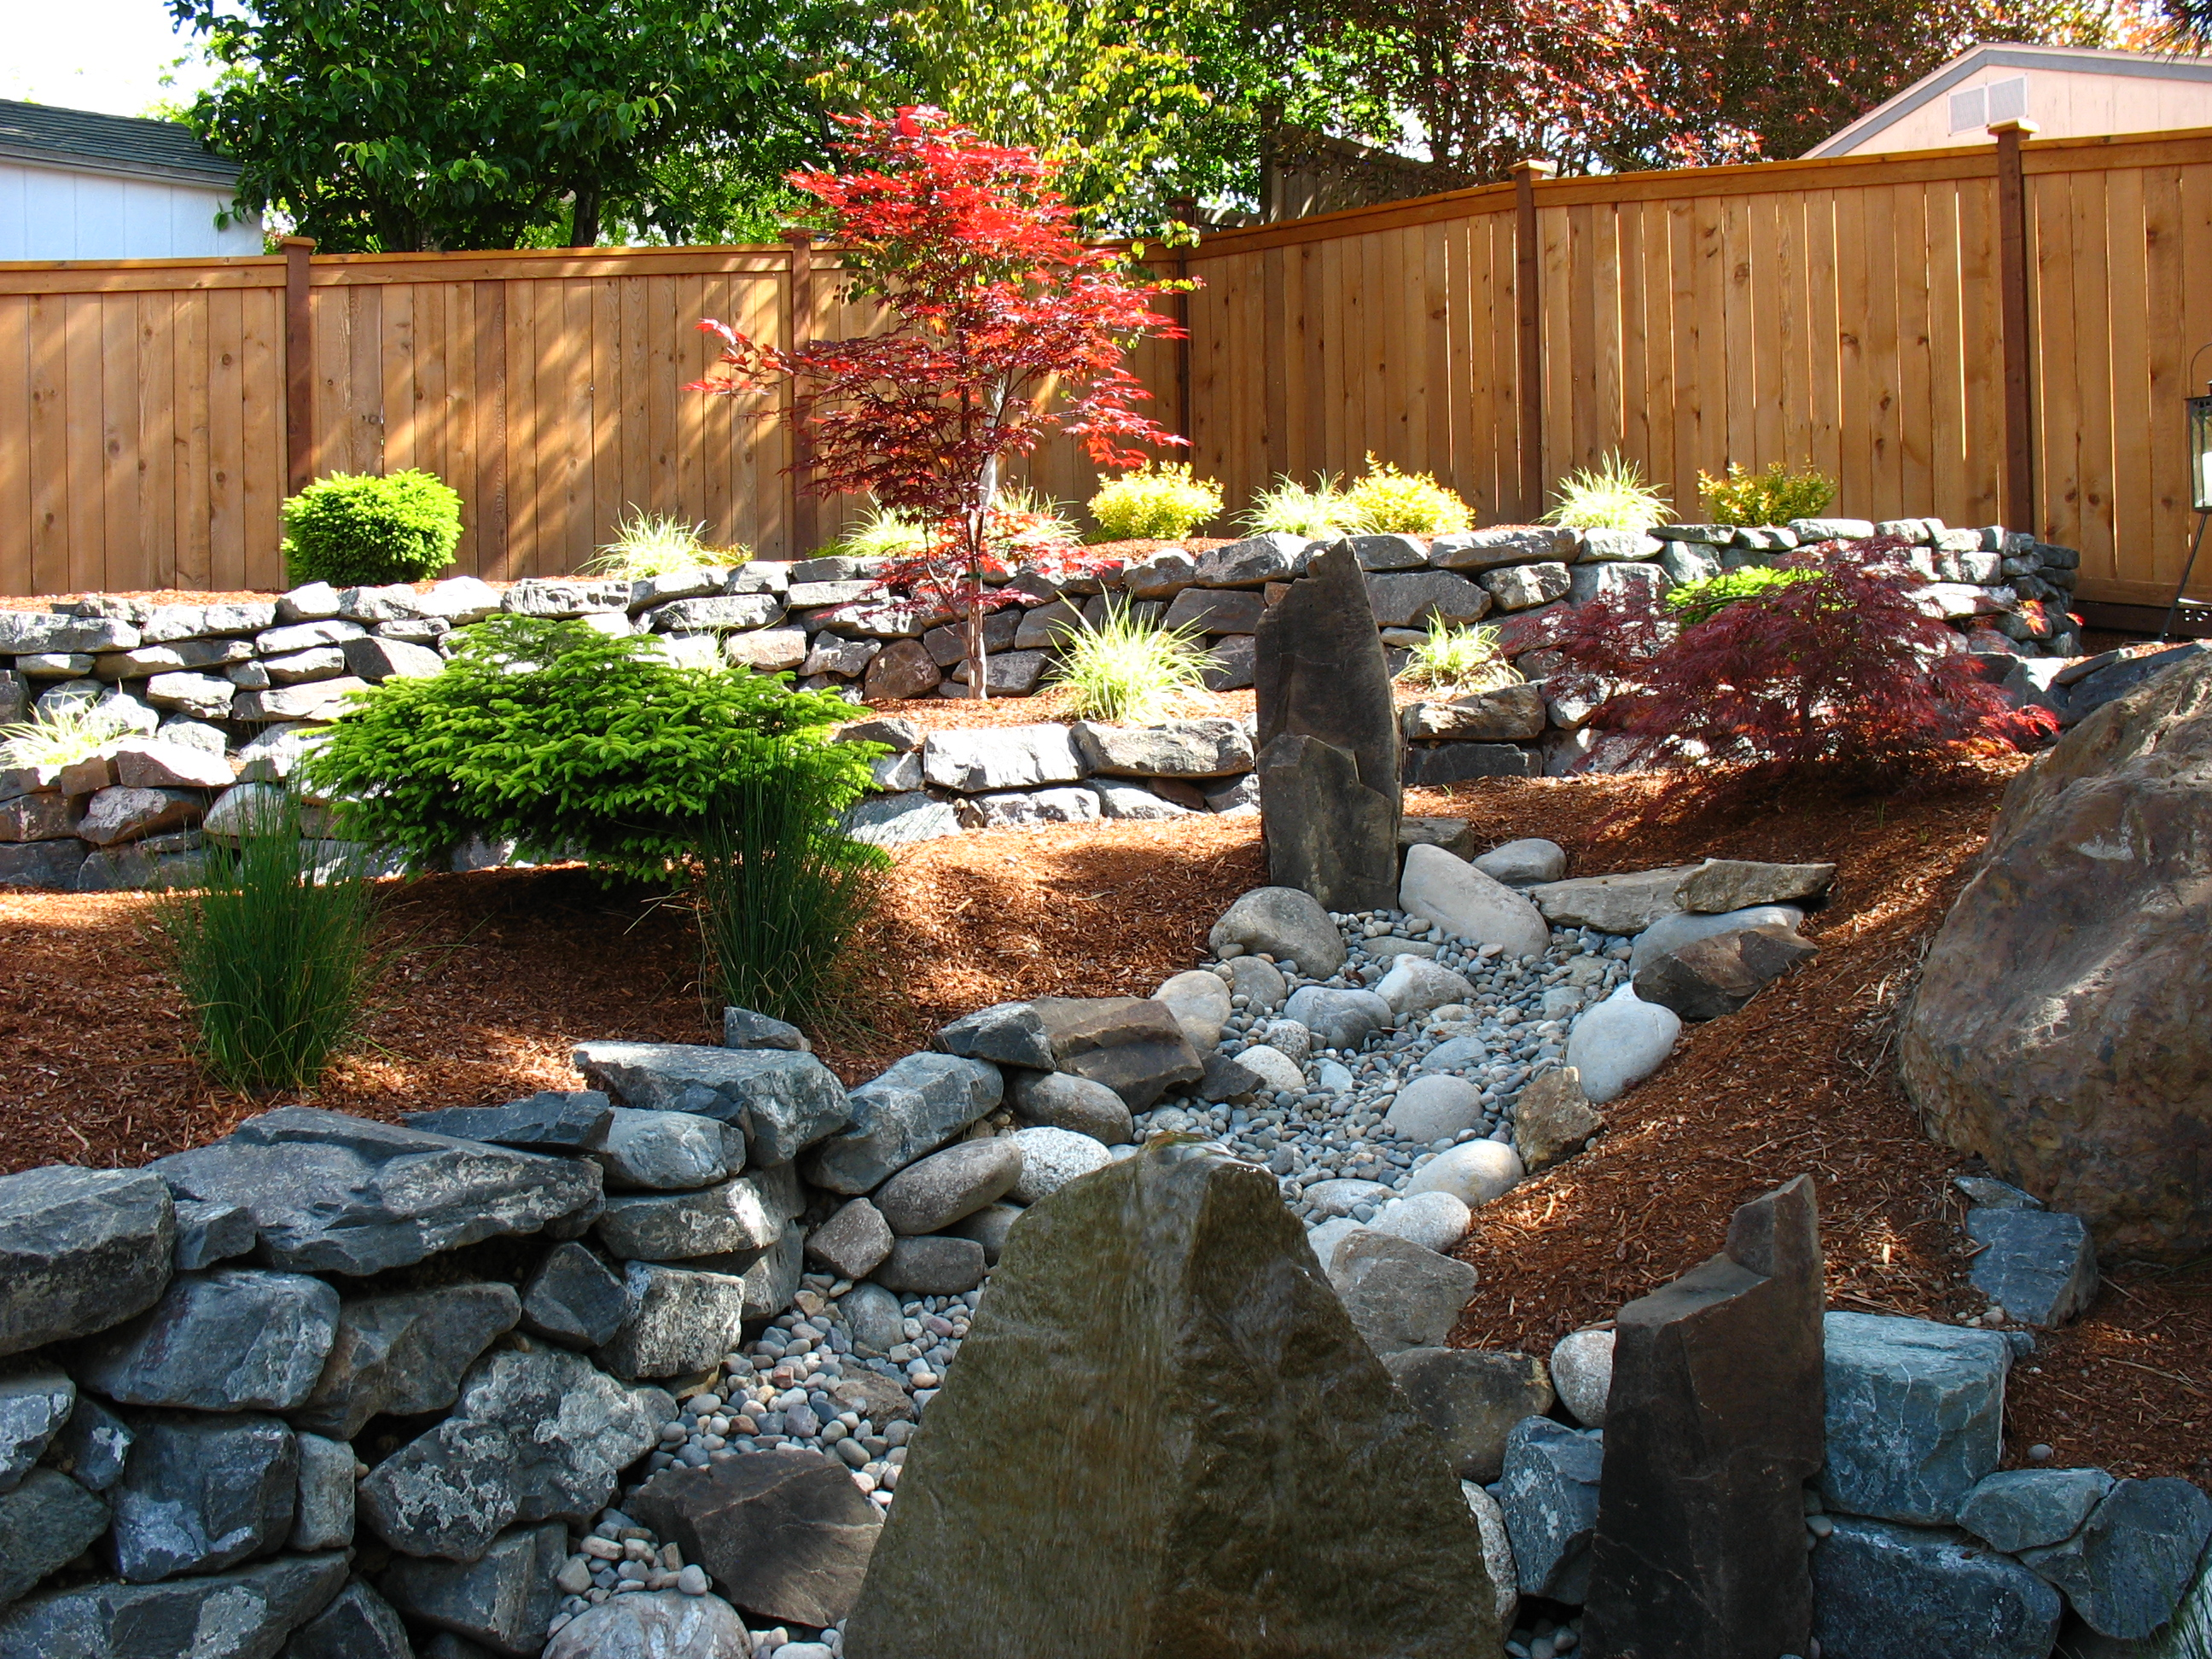 Landscaping dzingle 39 s landscaping llc serving the for Landscaping rocks seattle